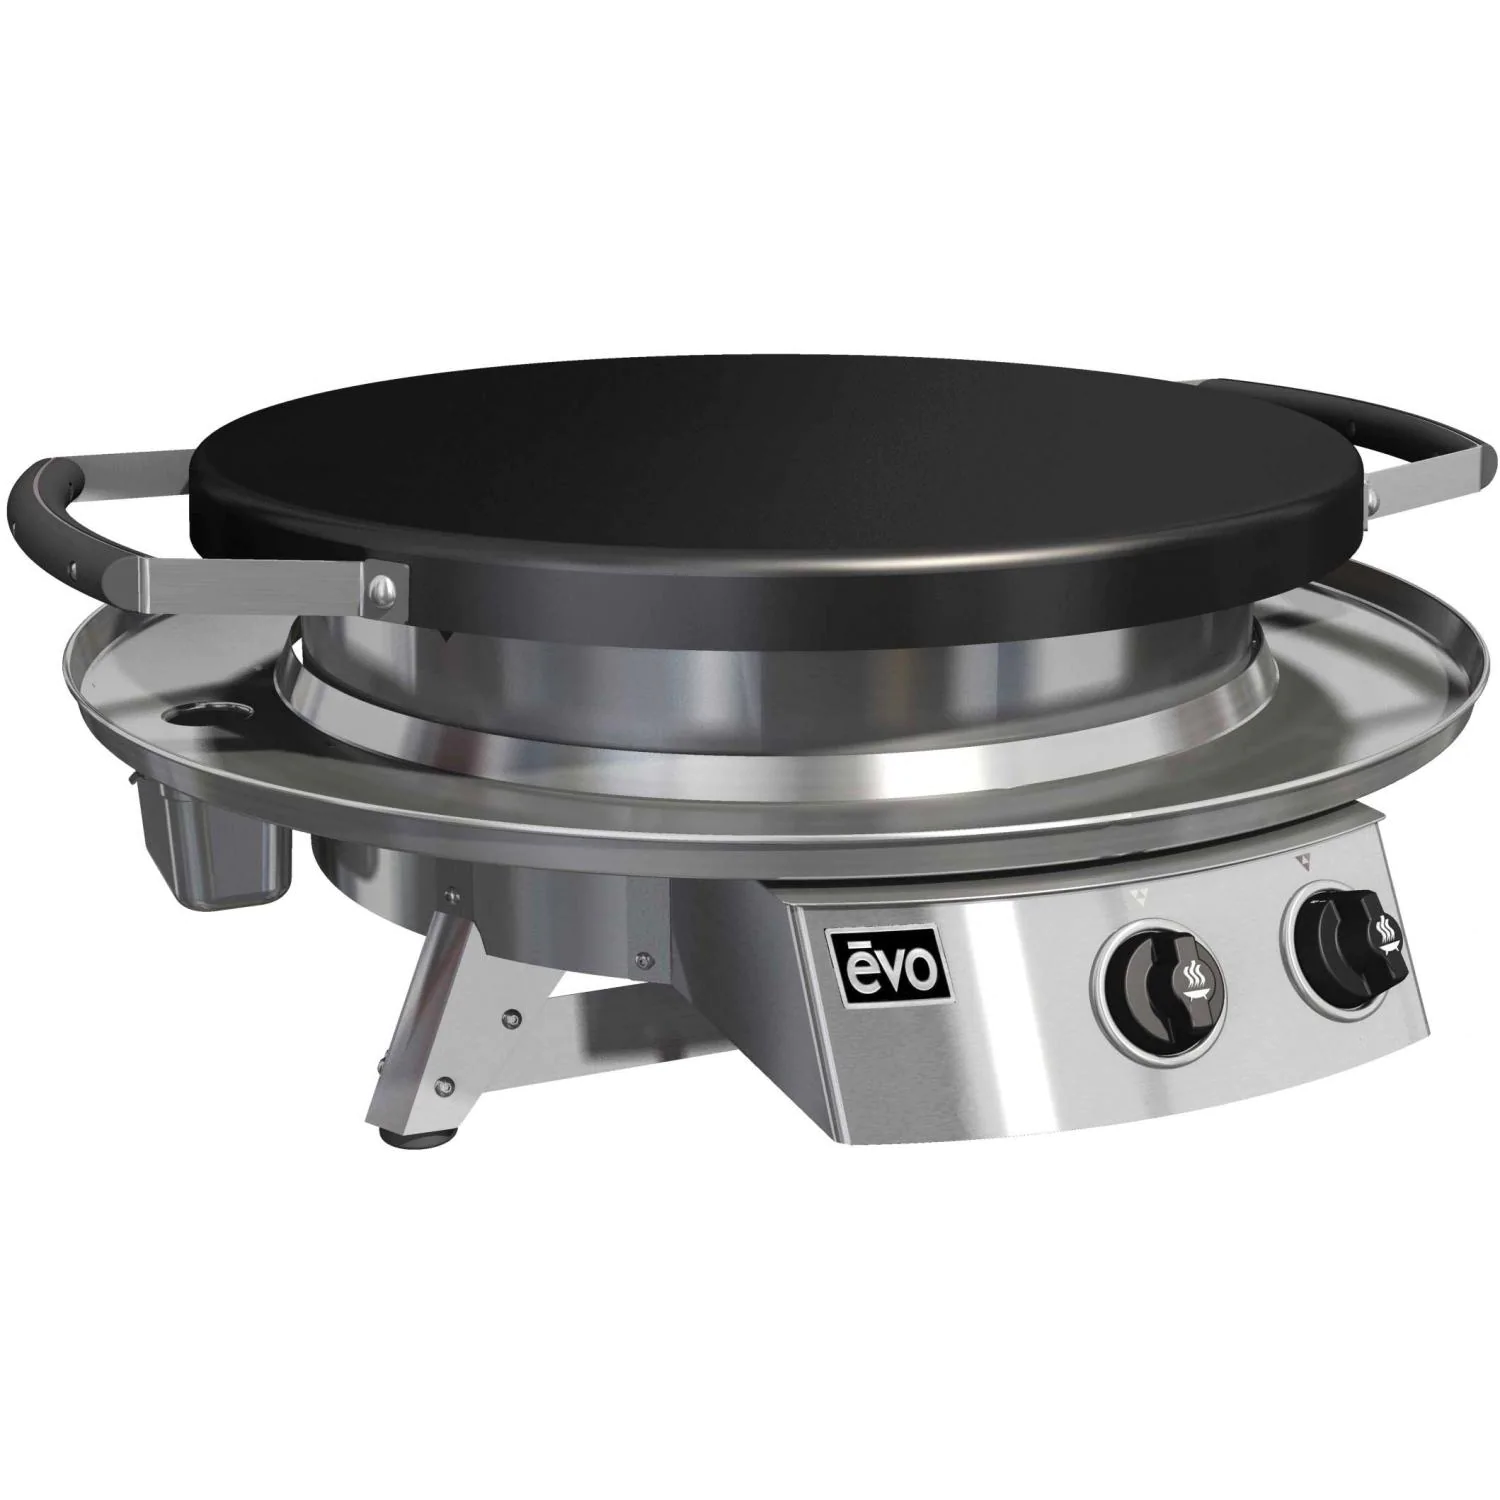 Evo Professional Classic Tabletop Flattop Natural Gas Grill - 10-0021-NG